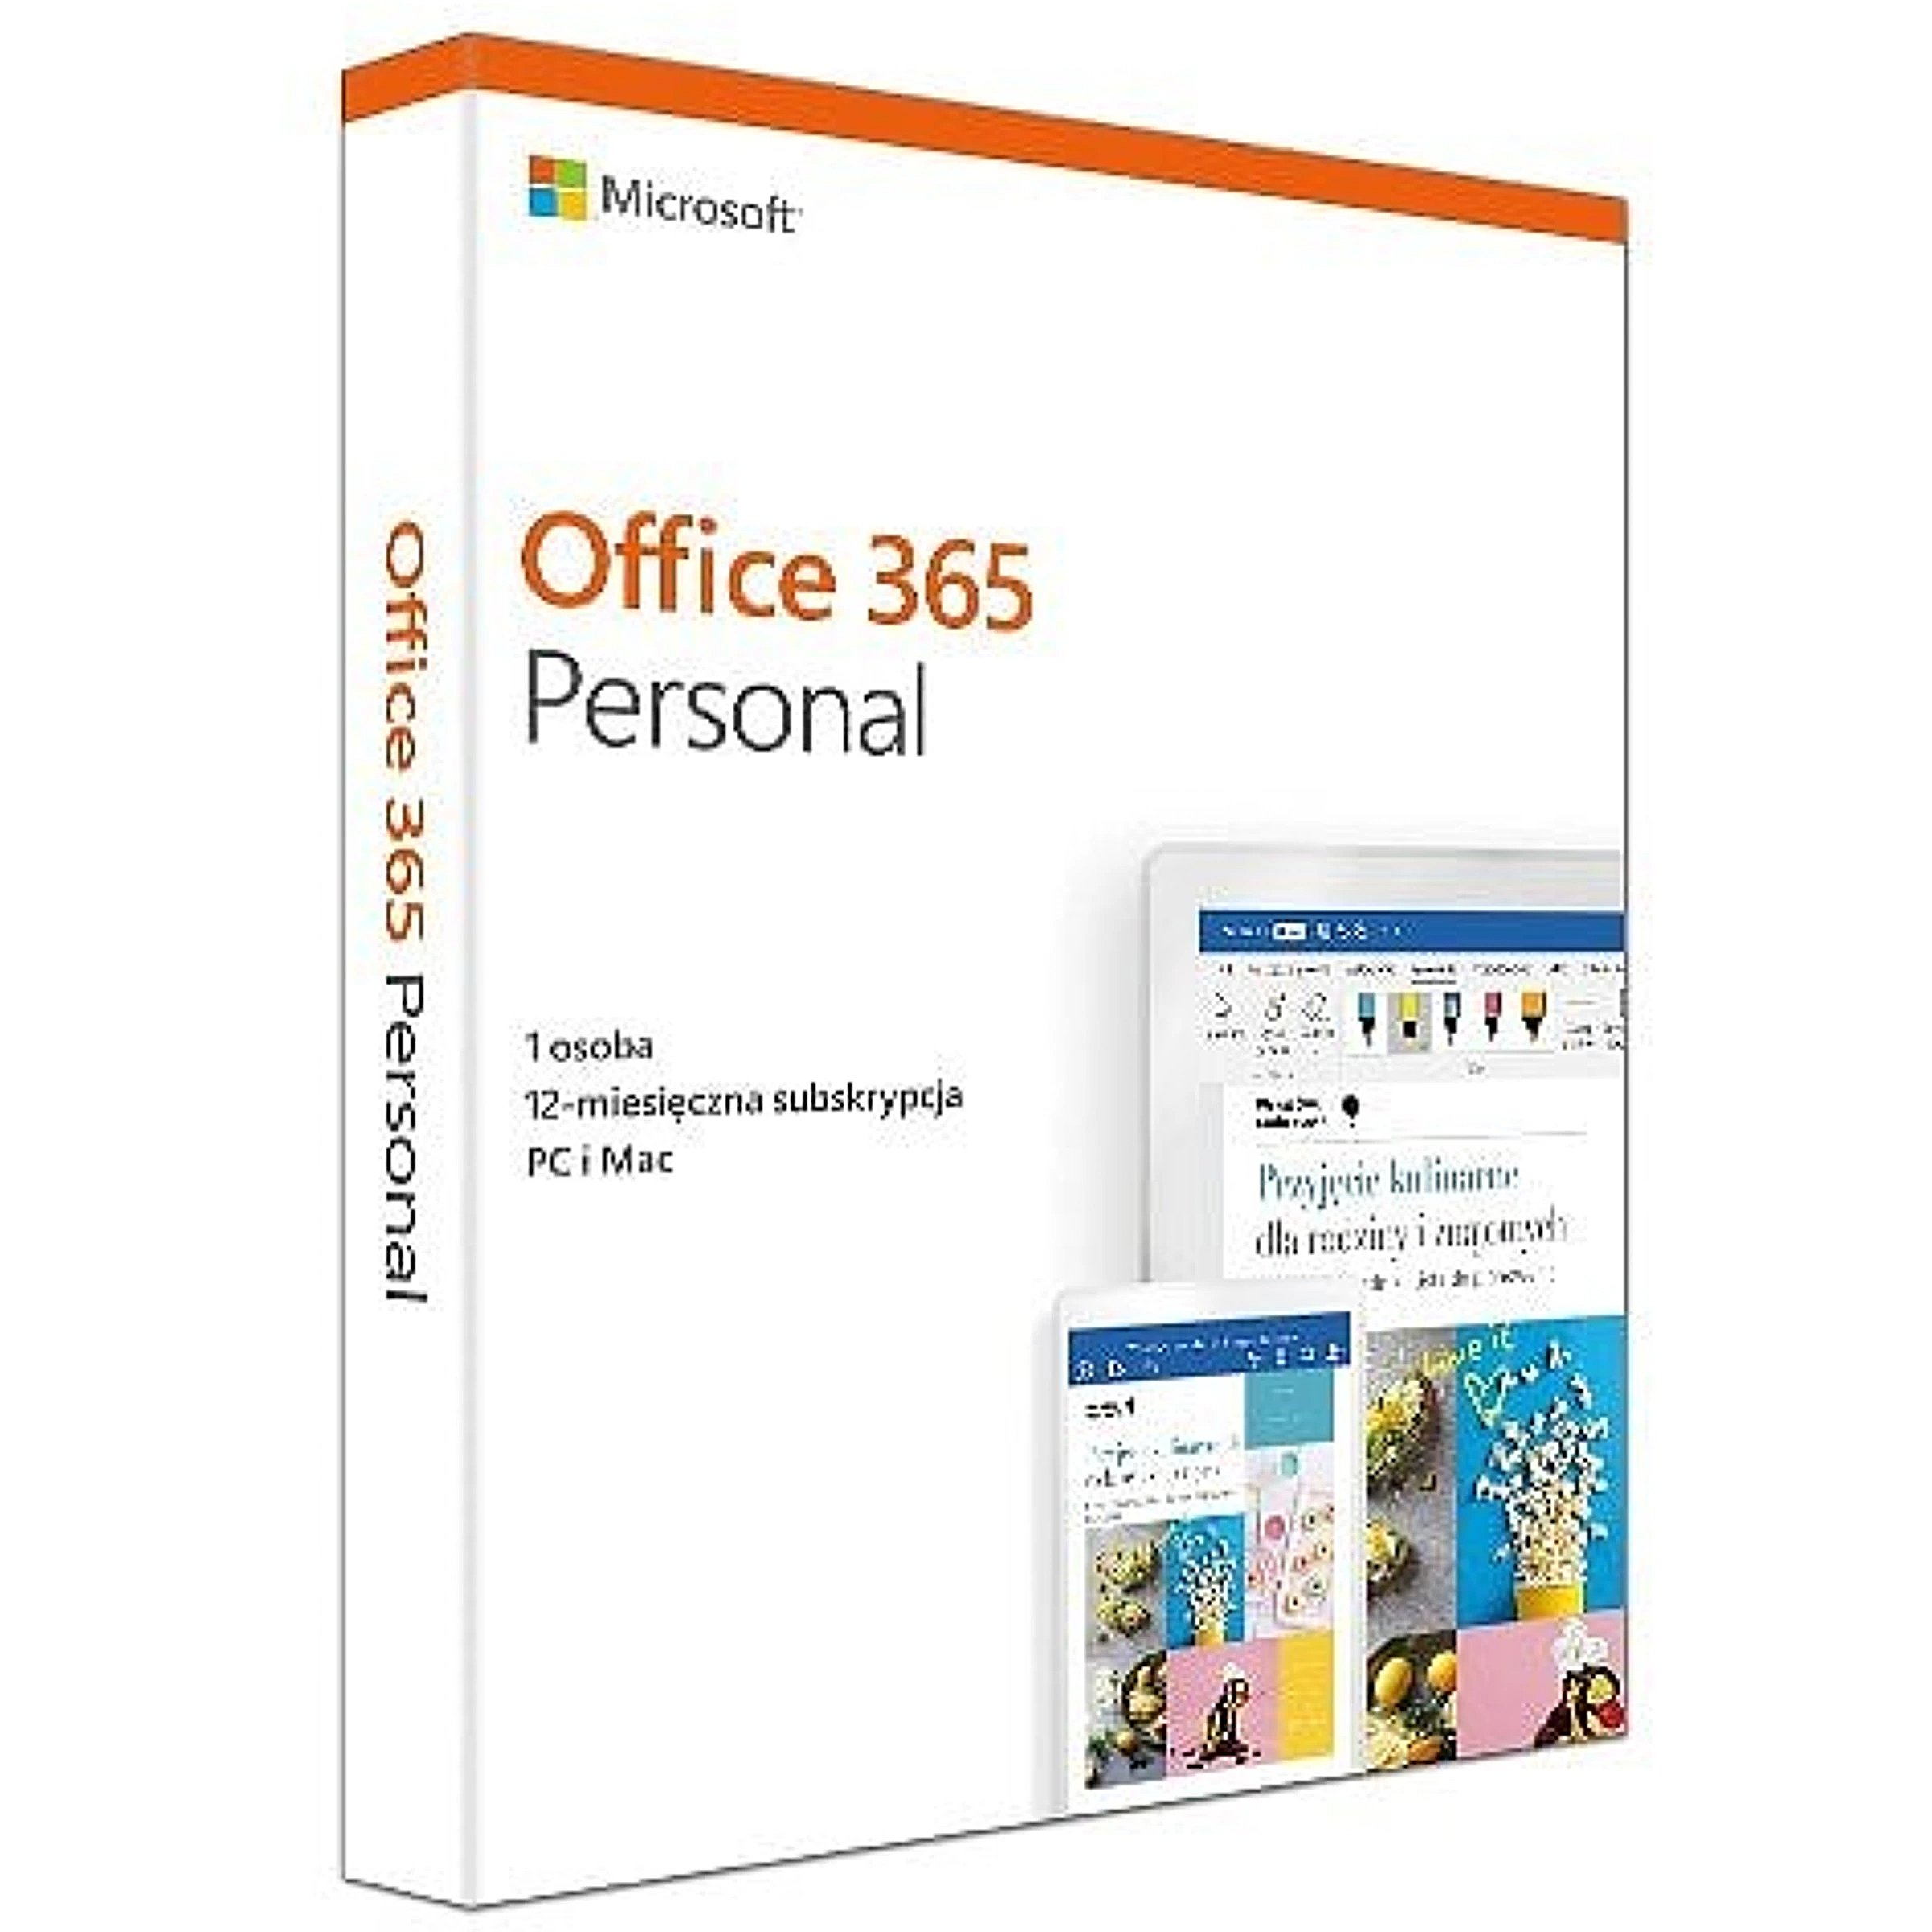 Microsoft Office 365 Personal PL Box P4 Subscripti..